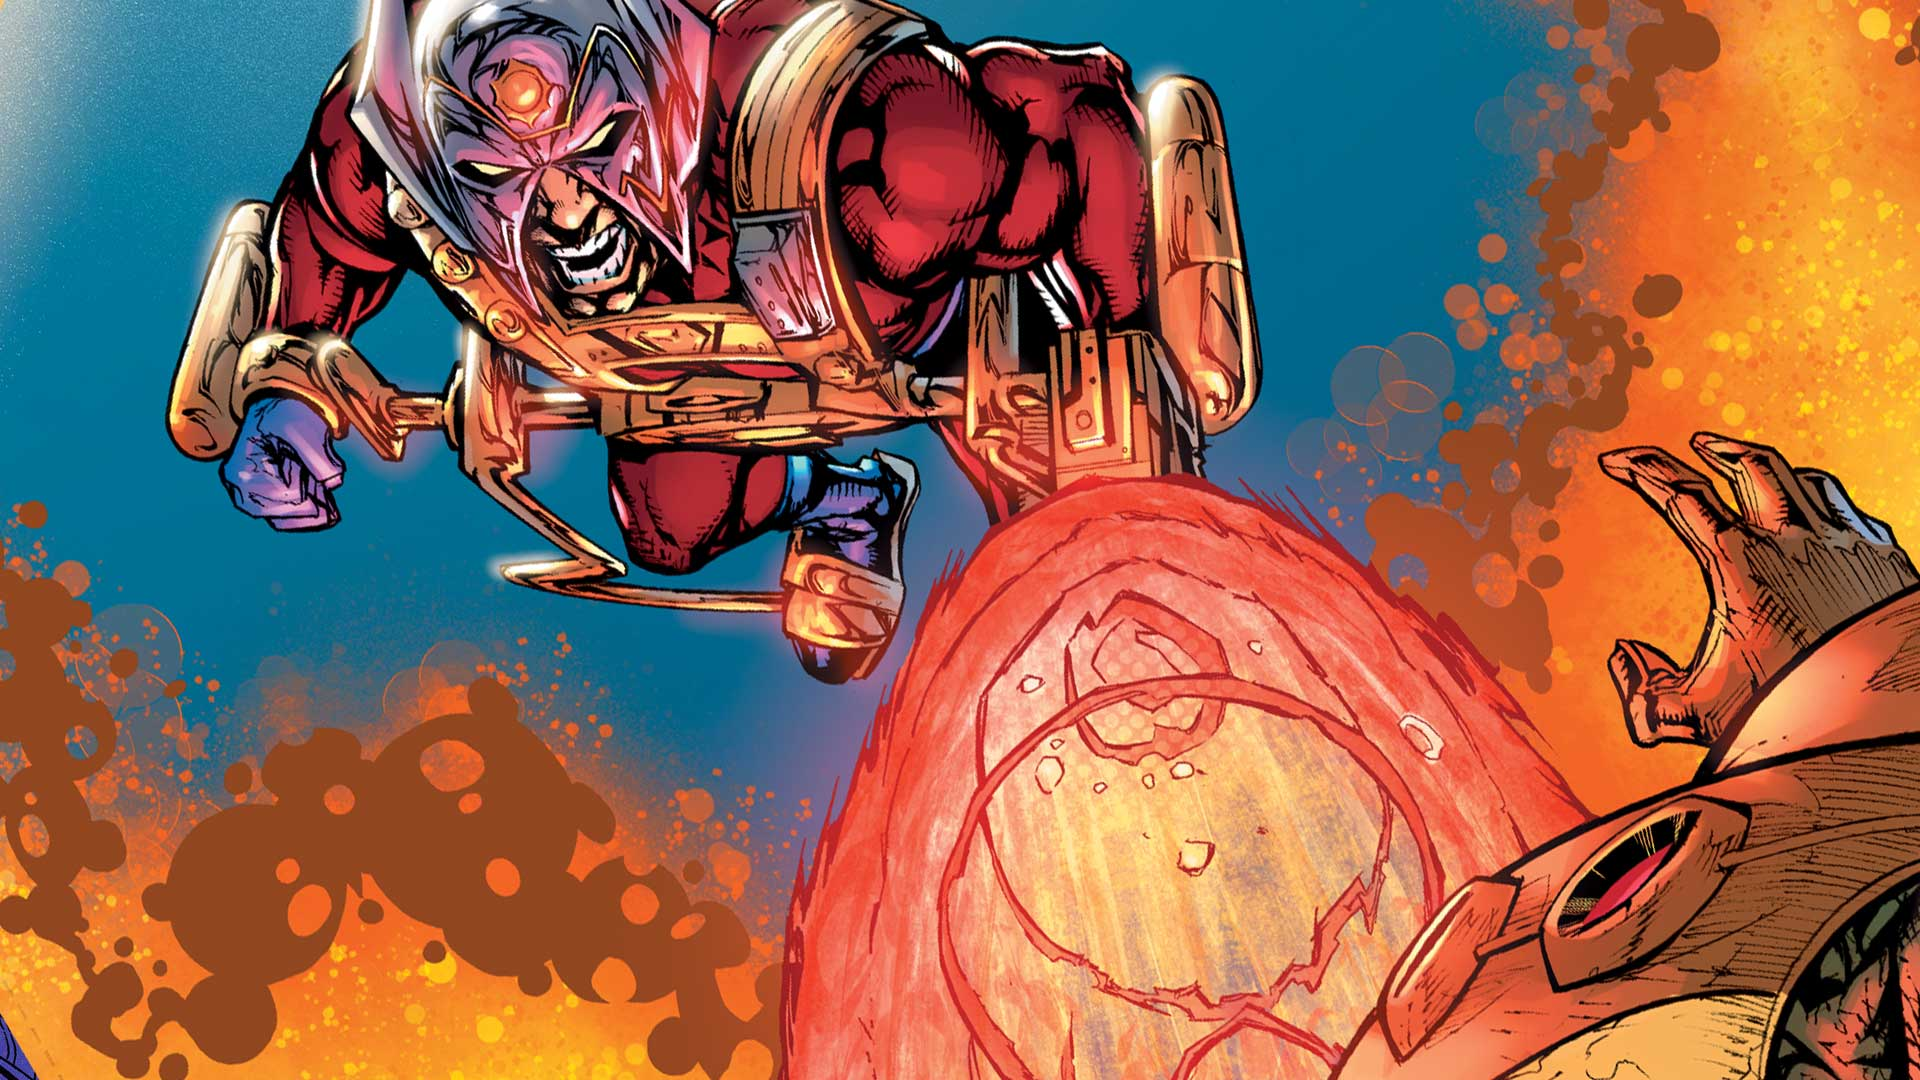 The New God Orion in Jack Kirby's 'New Gods' (Source: DC Comics)